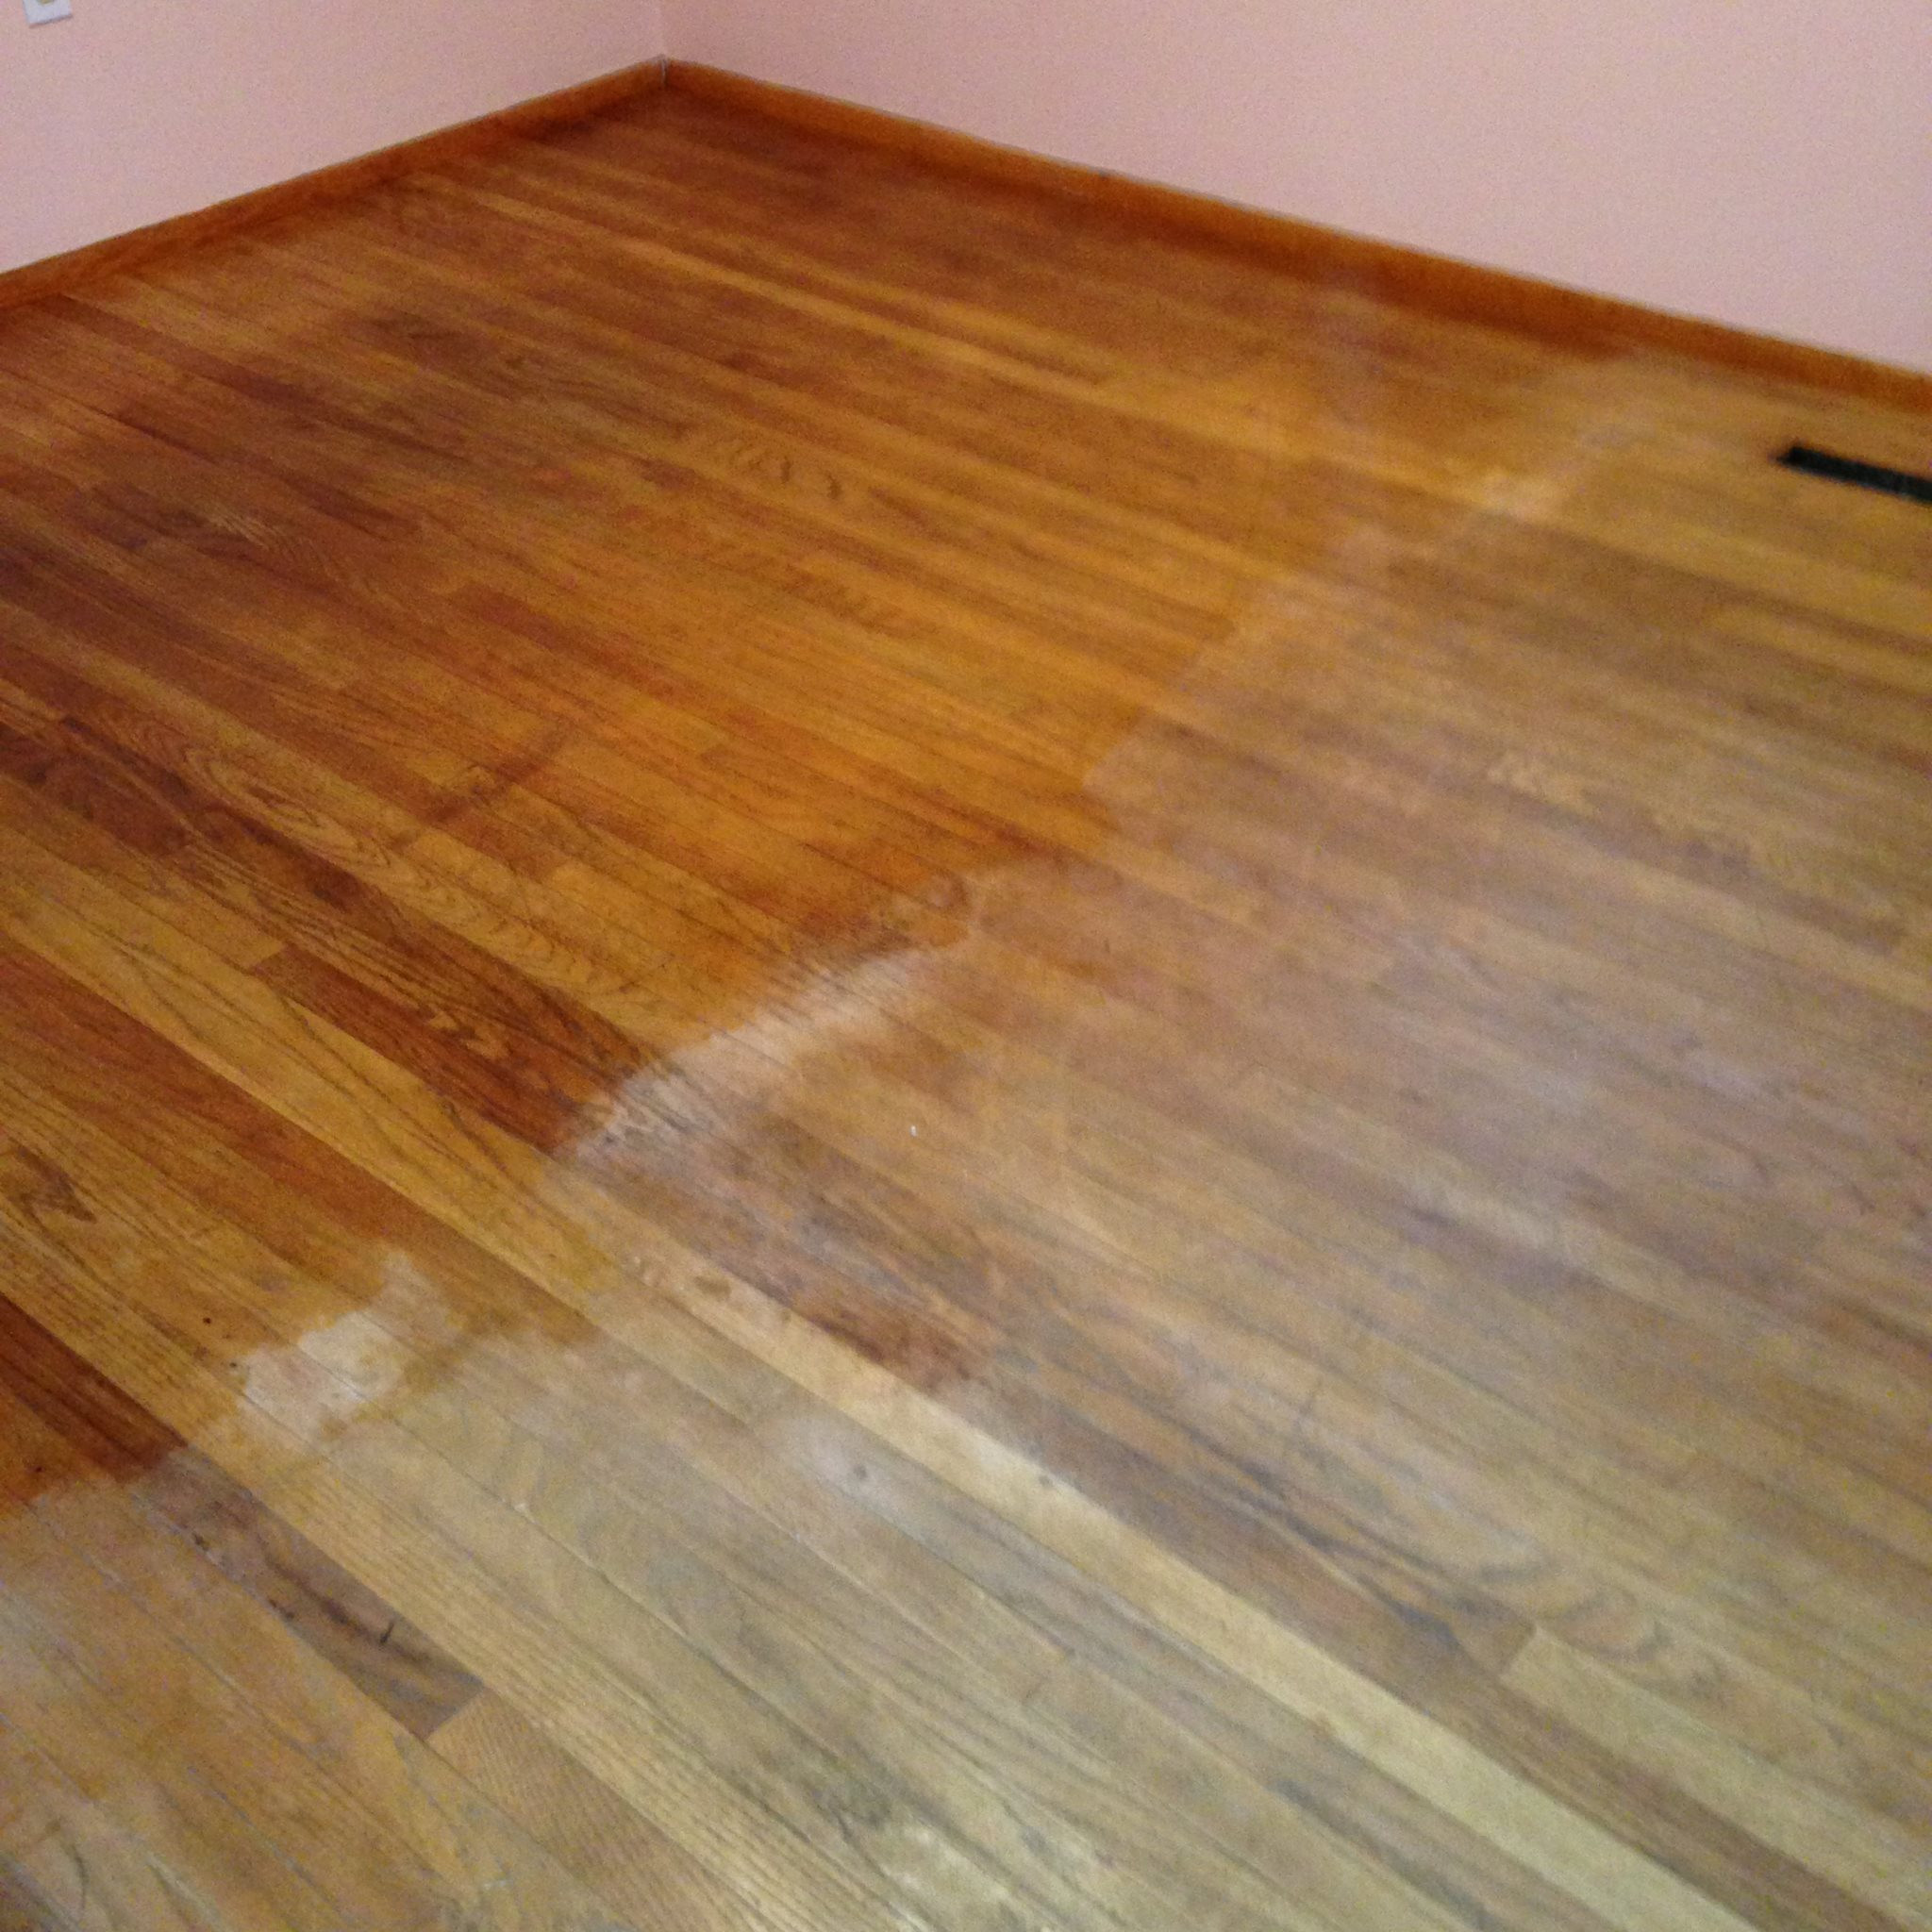 hardwood floor stains 2017 of 15 wood floor hacks every homeowner needs to know intended for wood floor hacks 15